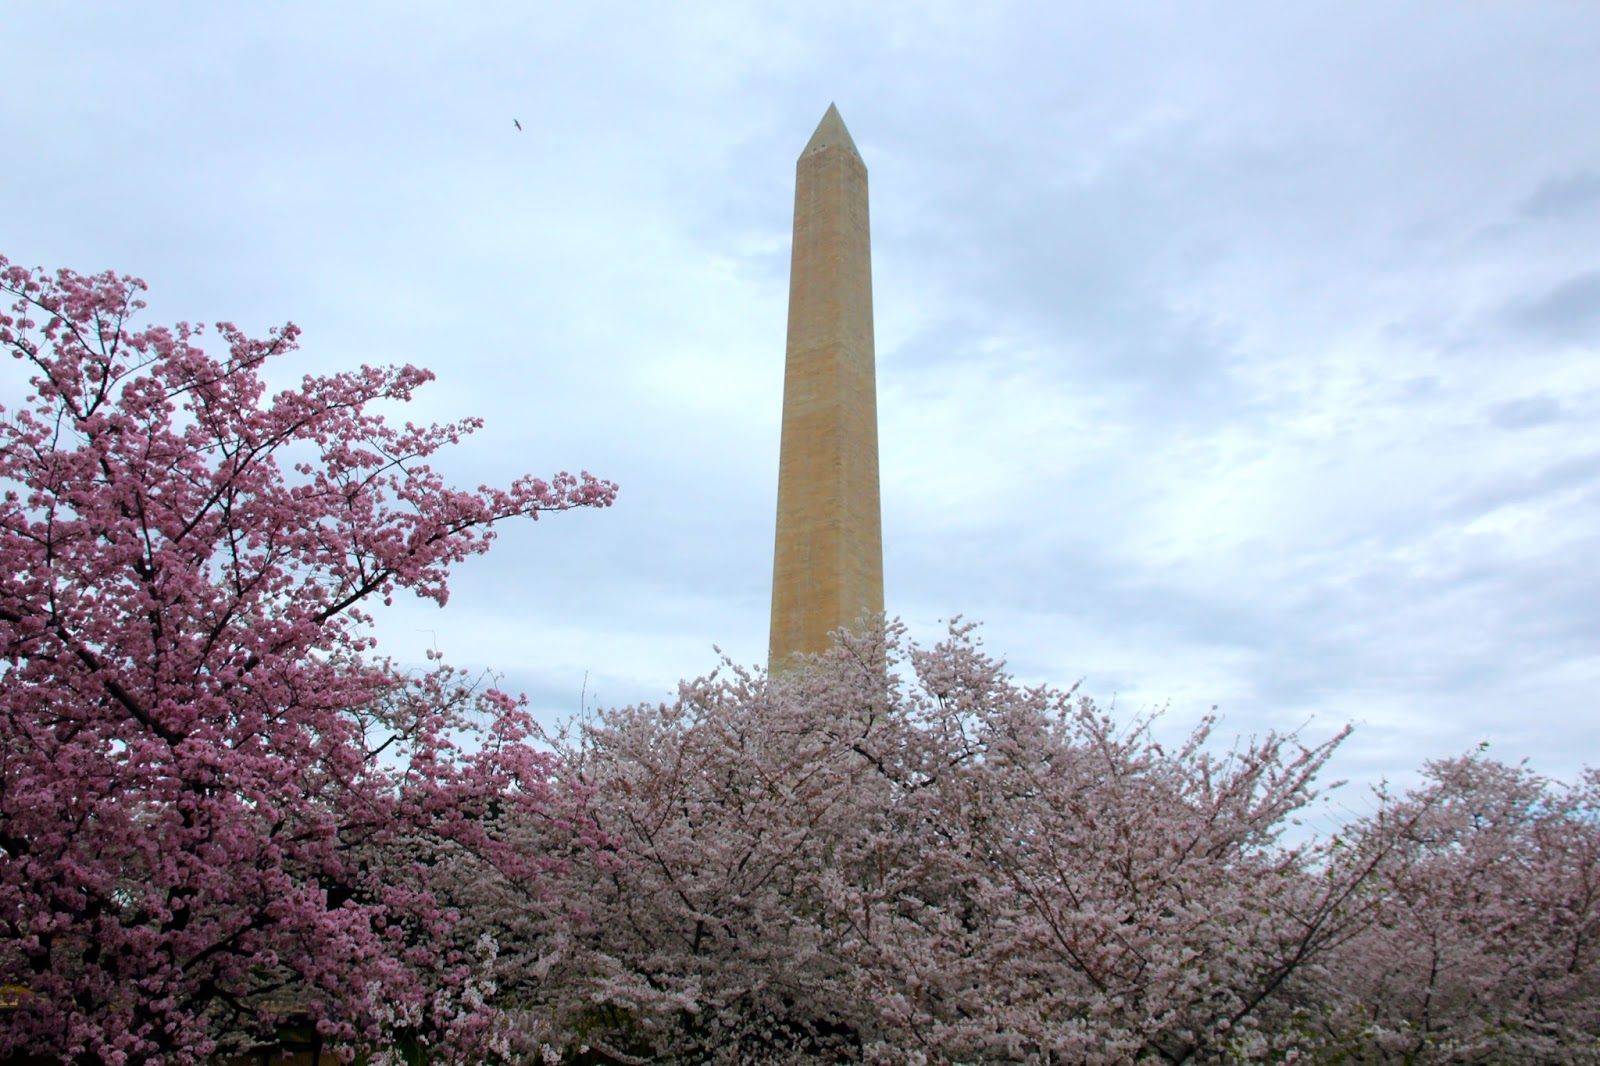 Travel Notes: Cherry Blossom Festival in Washington, DC